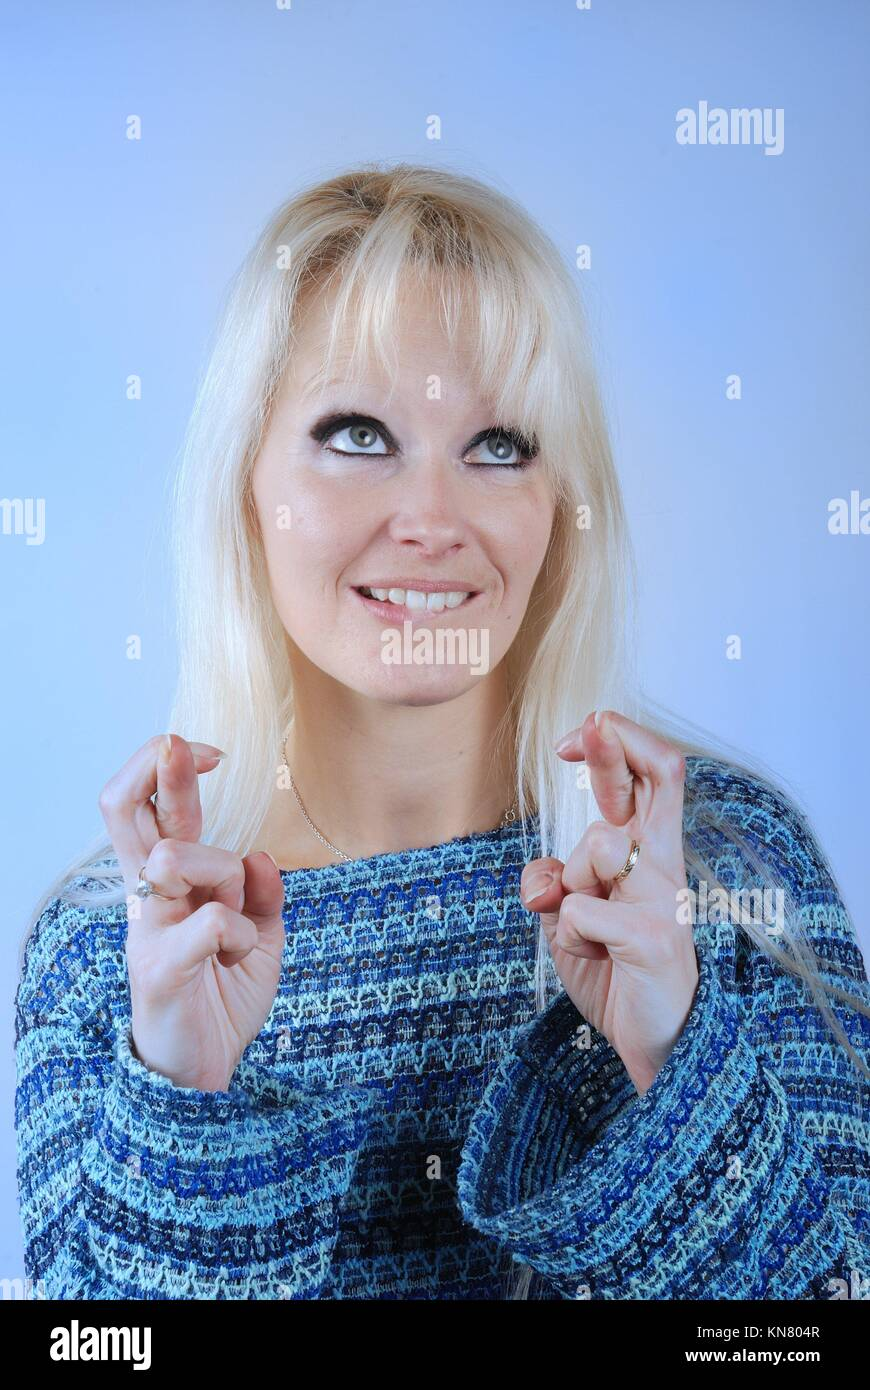 Young blond woman fingers crossed. - Stock Image